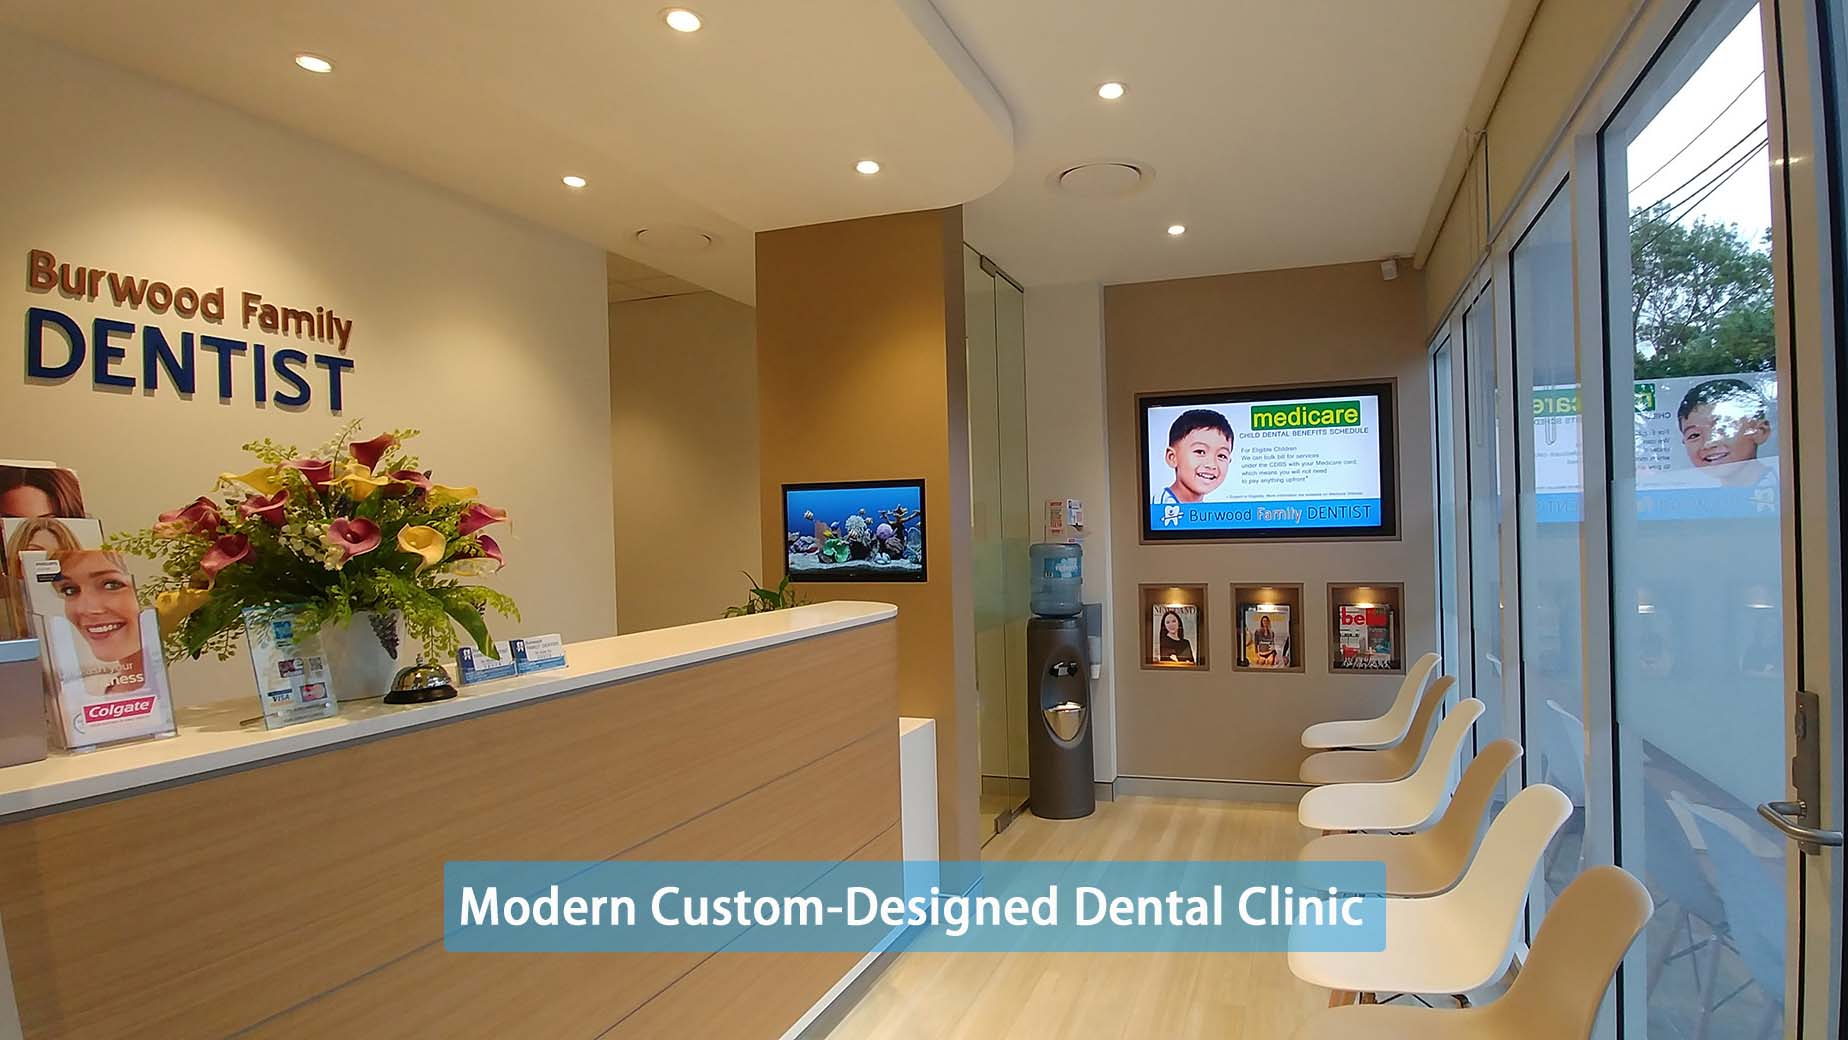 Burwood family Dentist